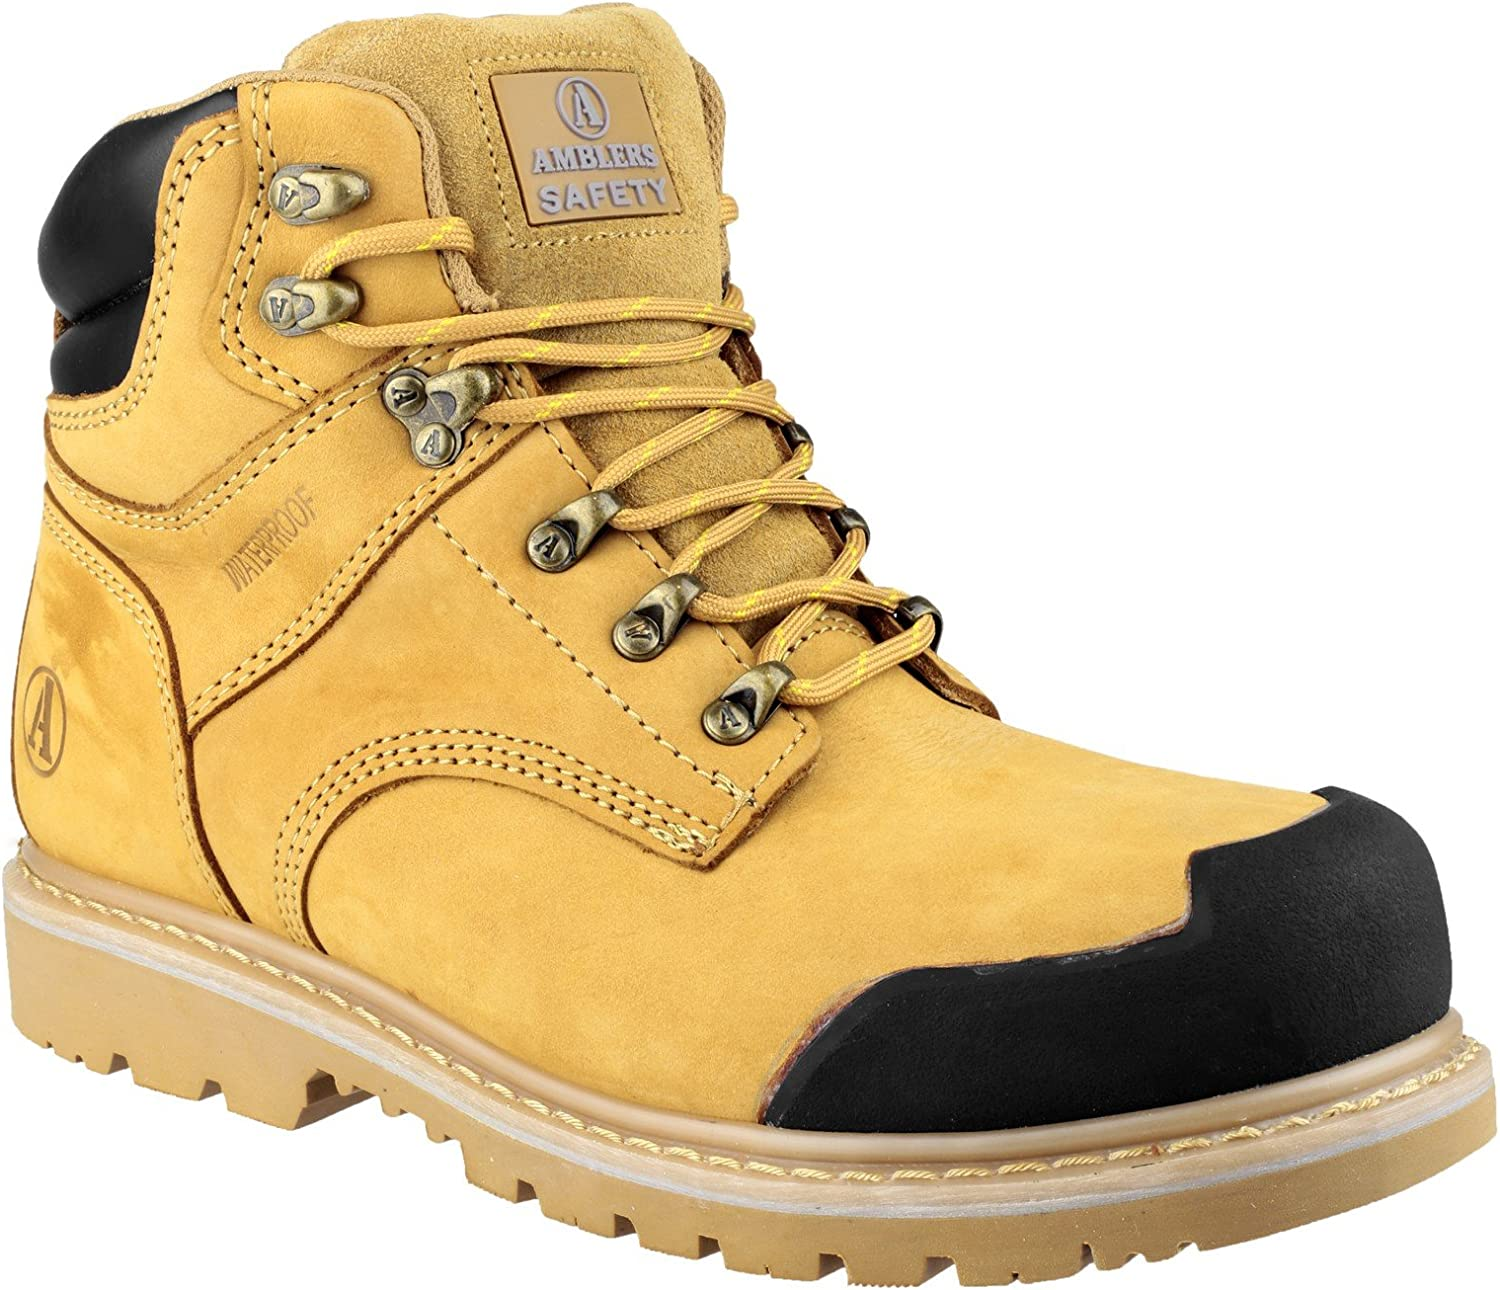 Amblers Safety Mens FS226 Goodyear Welted Waterproof Lace up Industrial Safety Boot Honey Size UK 12 EU 47